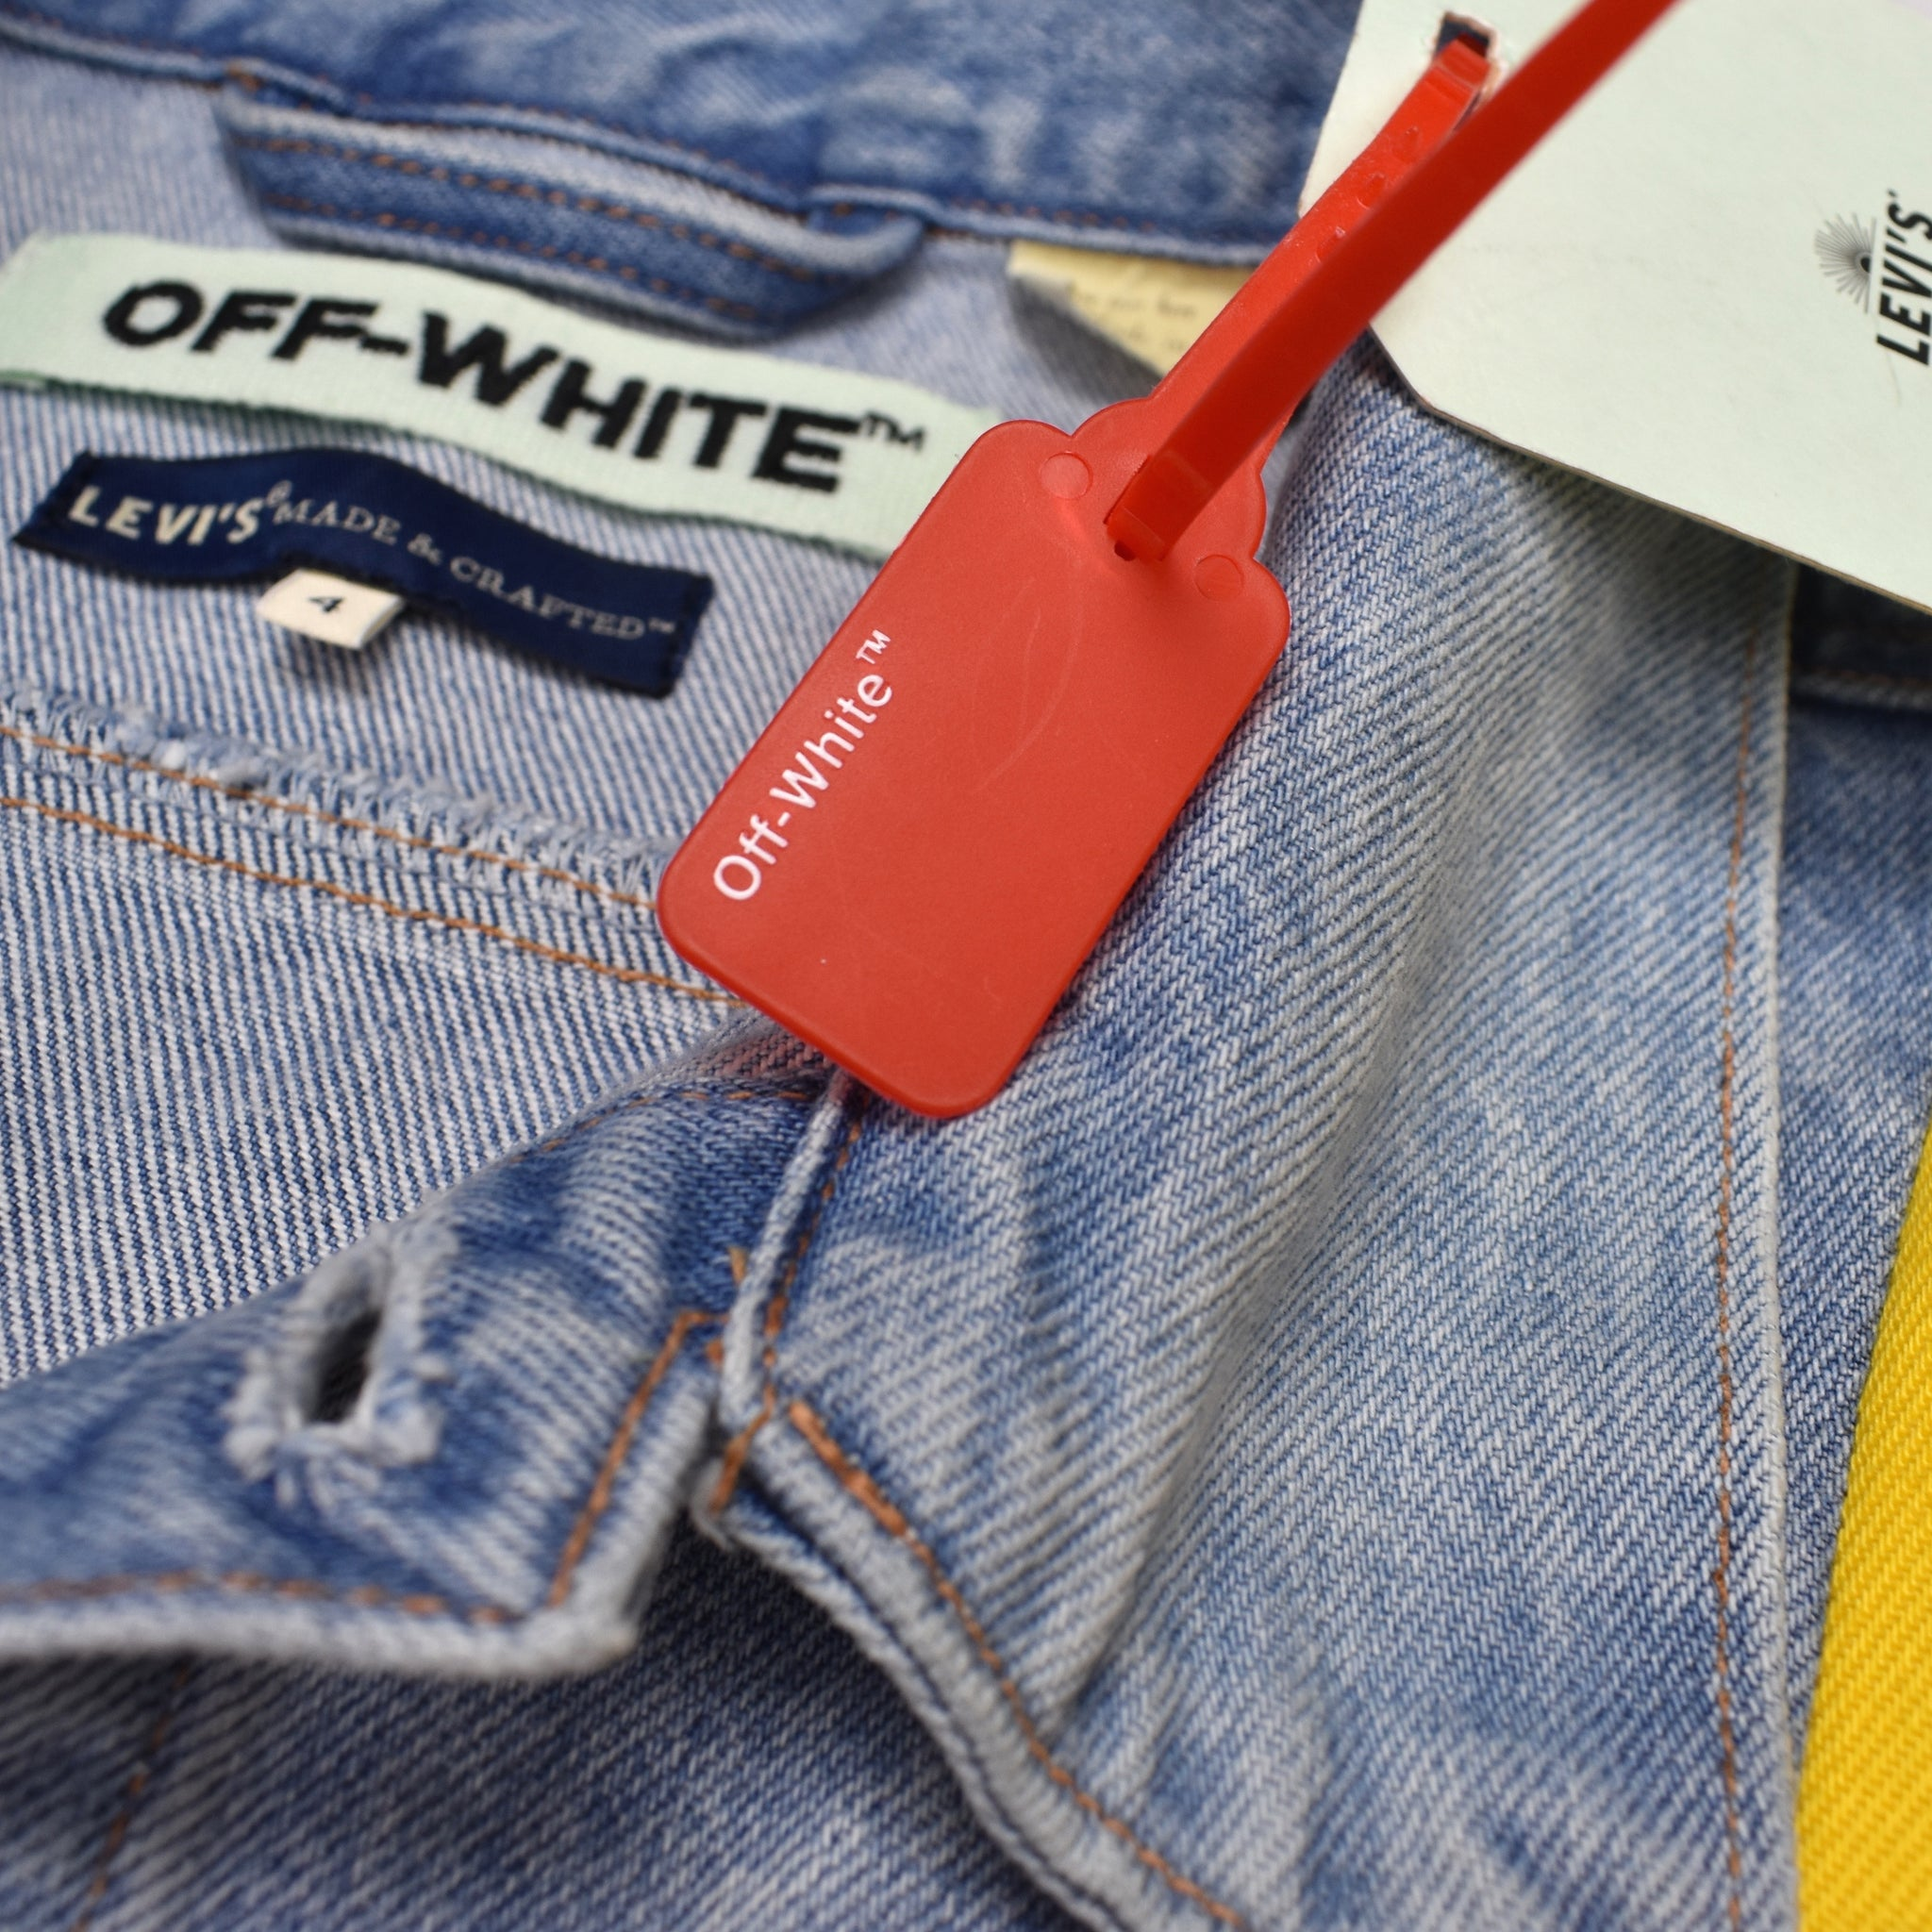 Off-White x Levi's - Paneled Denim Trucker Jacket